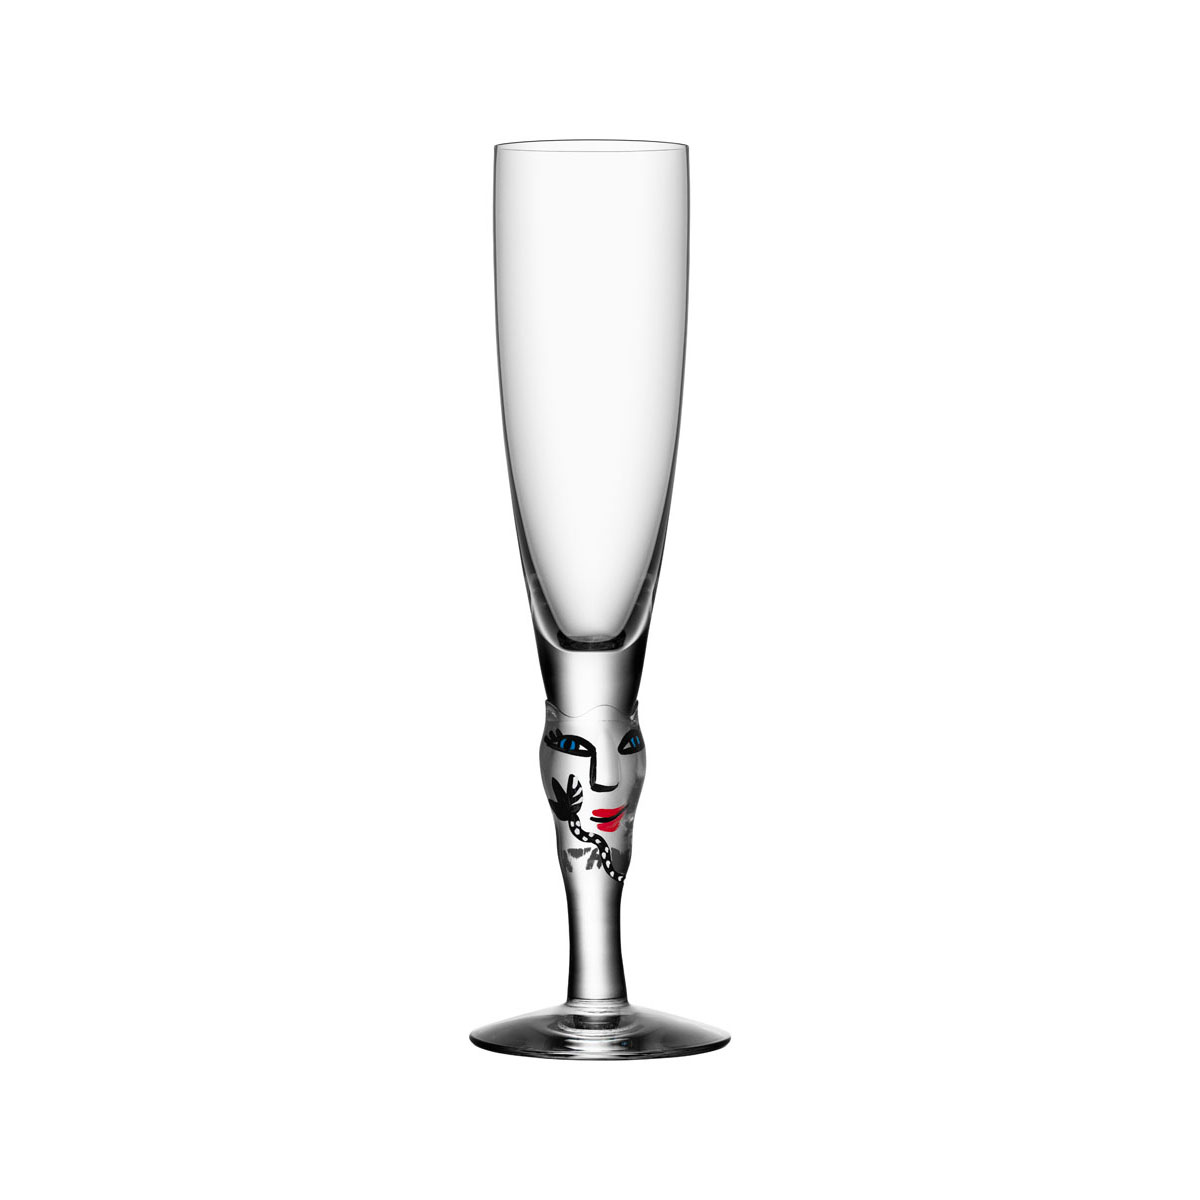 Kosta Boda Open Minds Crystal Champagne, Clear, Single